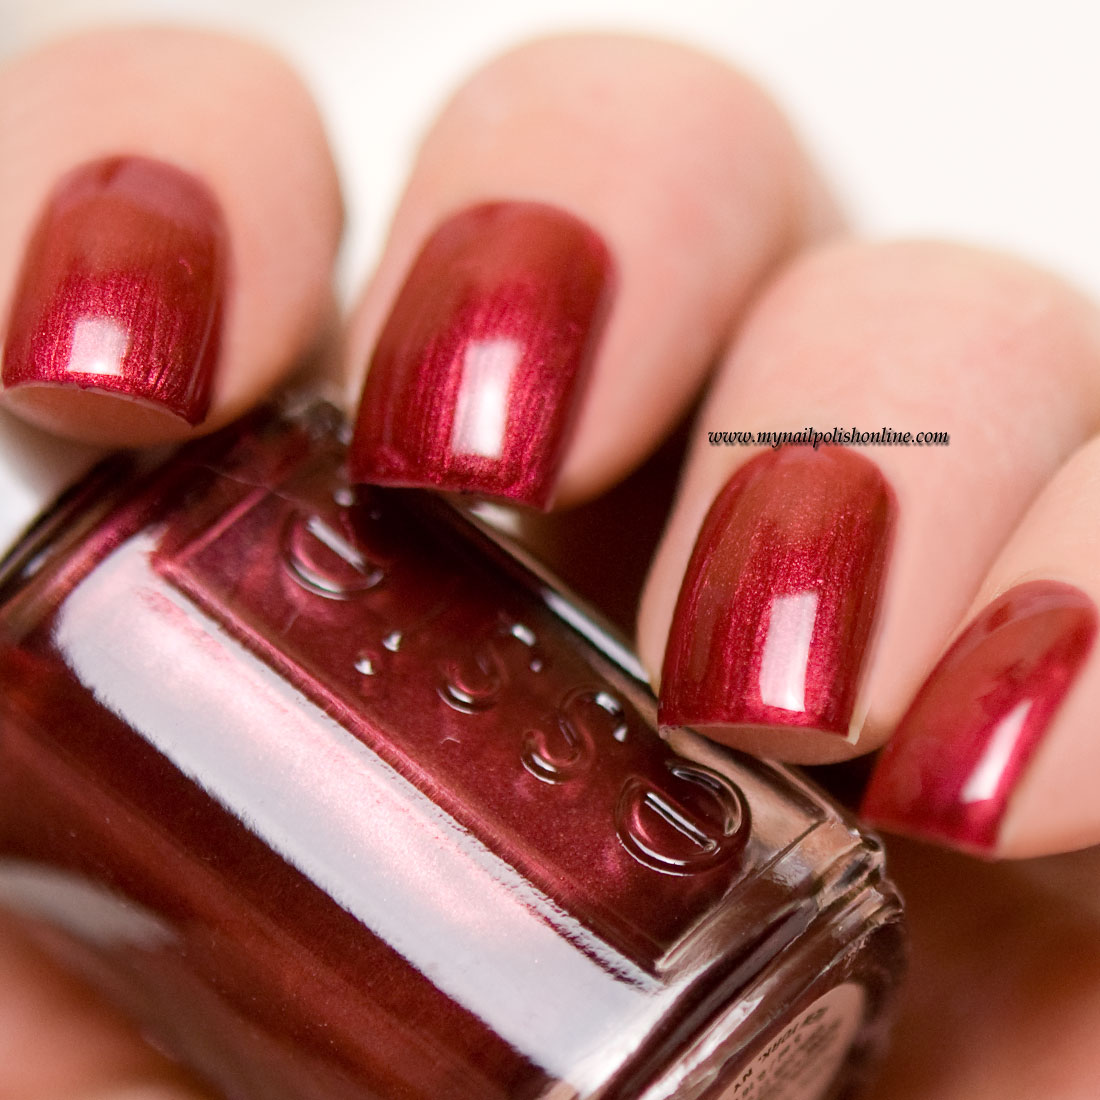 Essie - Life of the party - My Nail Polish Online